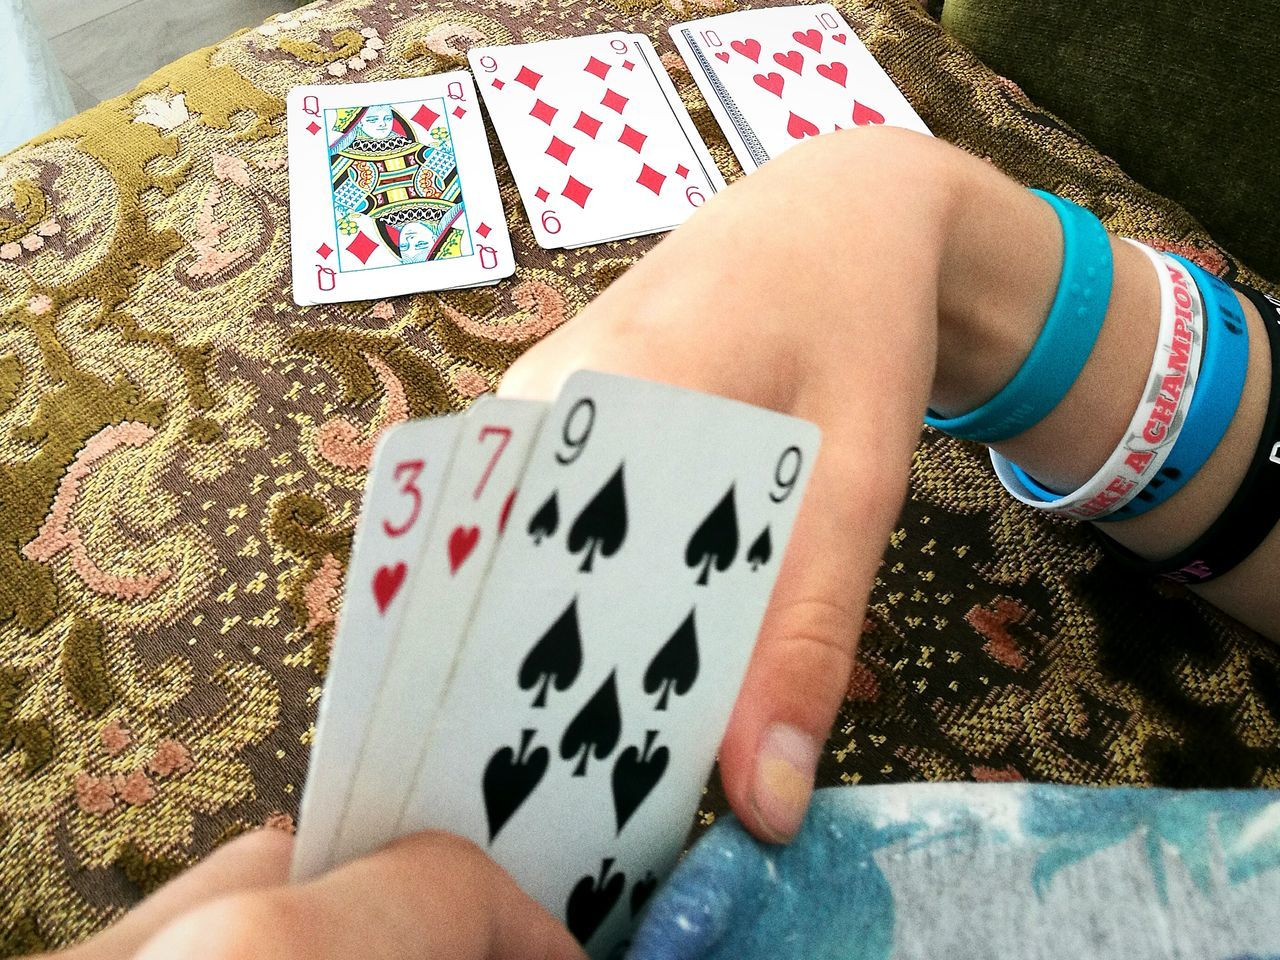 People Together Playing Cards Playingcards Enjoying Life Cabin Life When It's Raining Summerlife Cards Game Cards Social Activity Relaxing